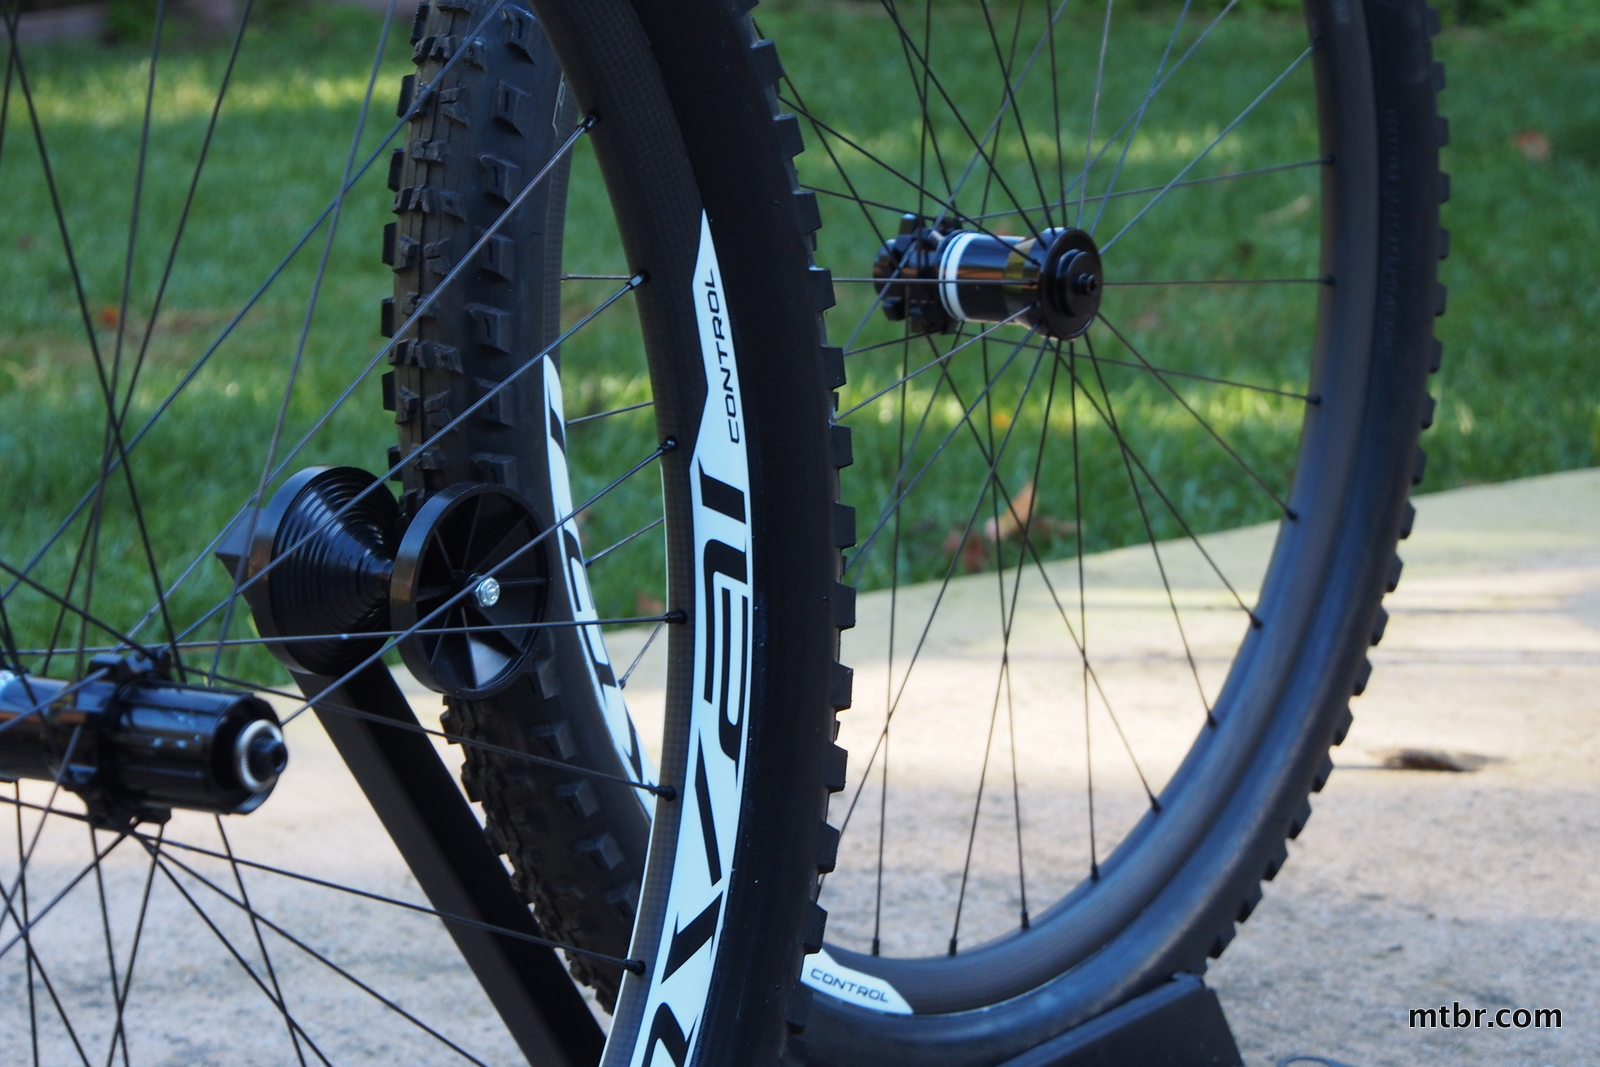 Specialized Carbon Control 29 and Renegade Tires